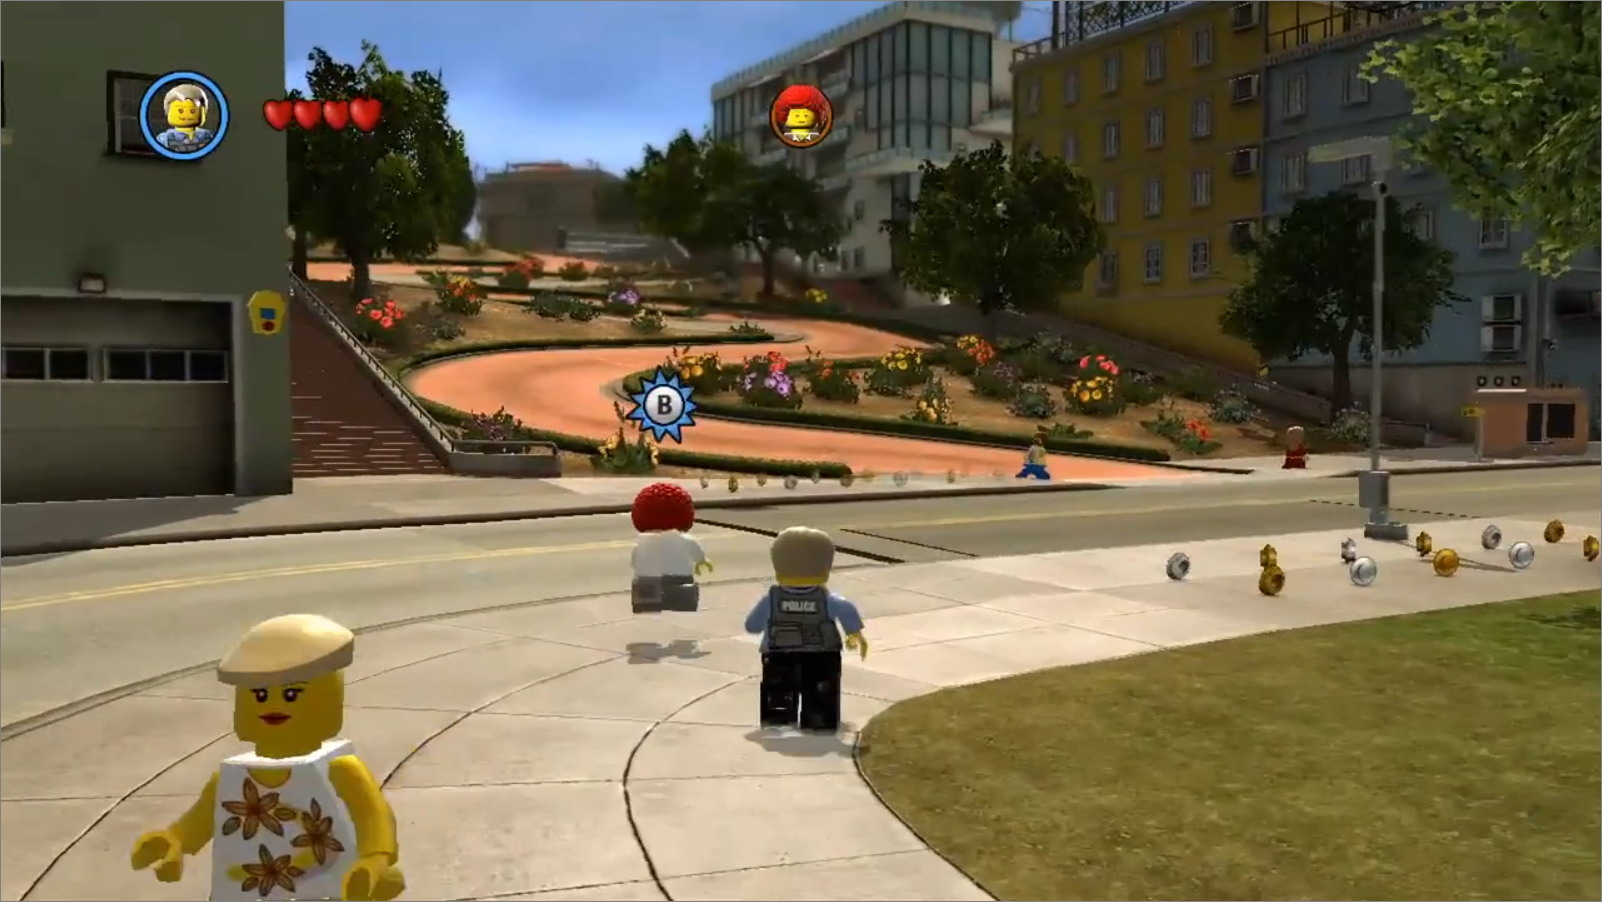 Lego City Undercover Wallpapers High Quality Download Free